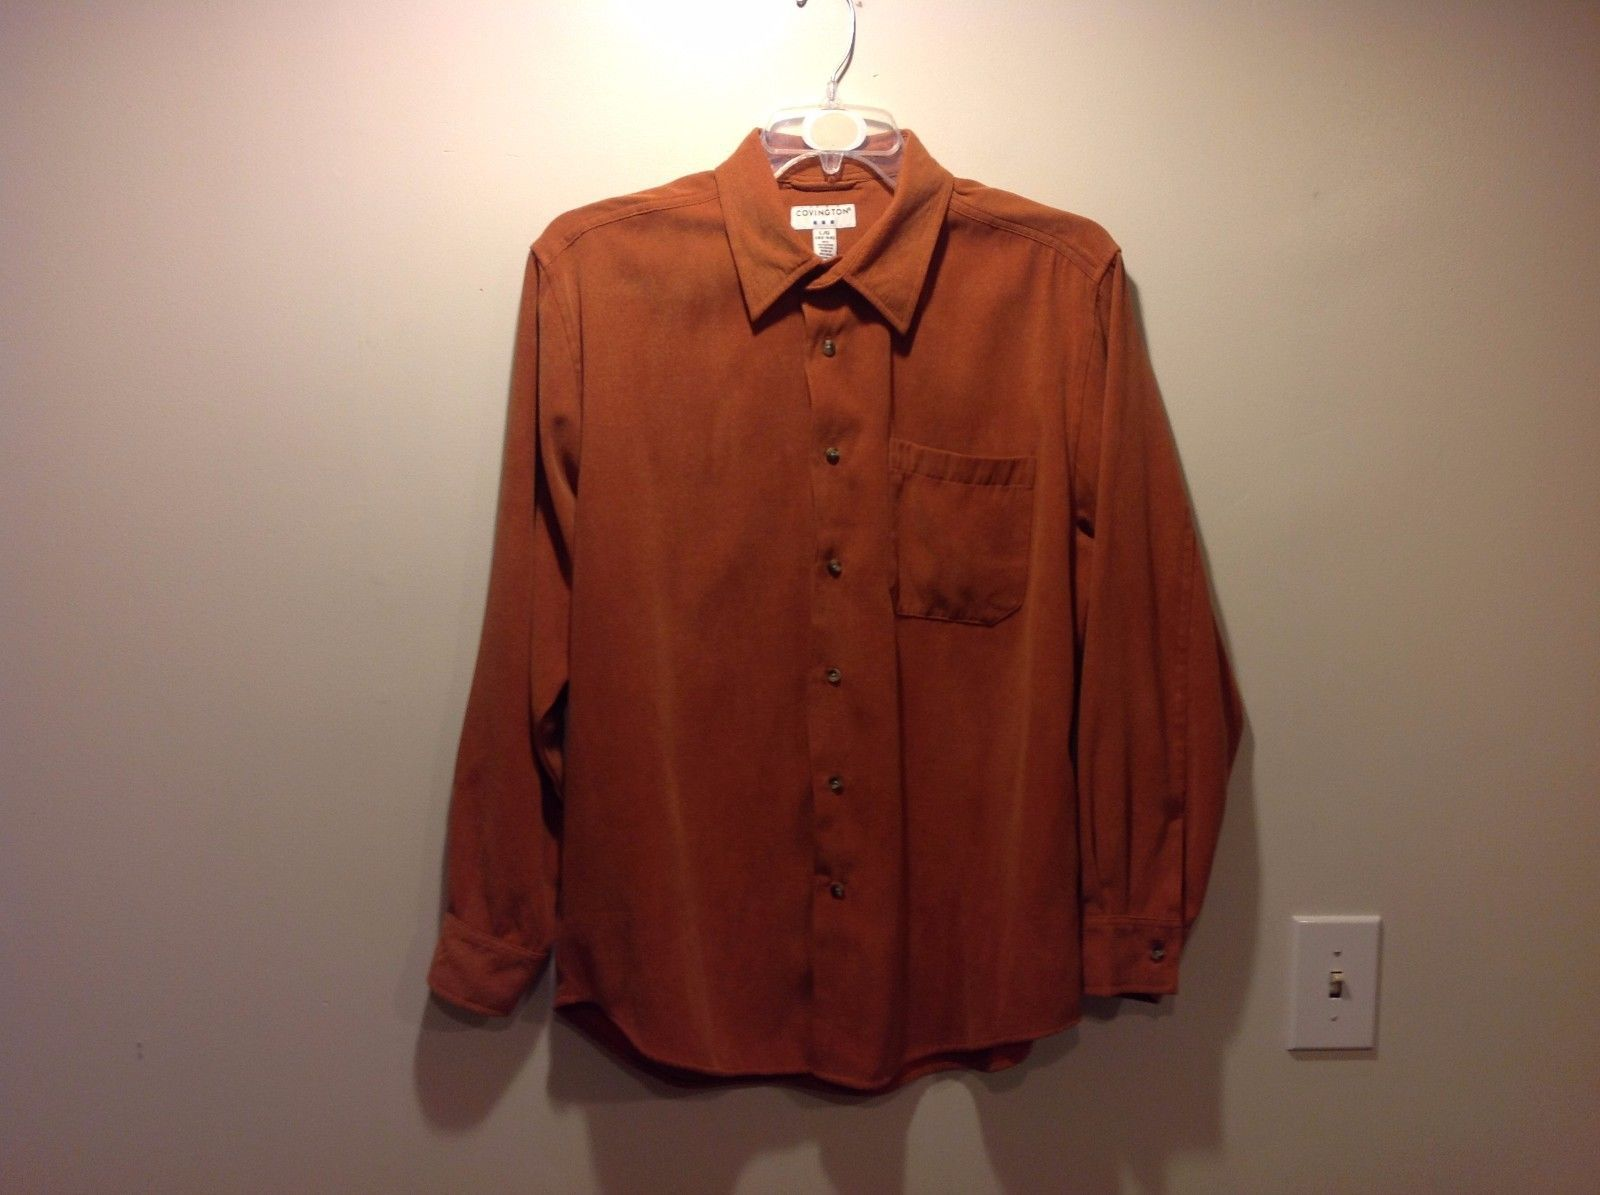 Used Great Condition Covington Burnt Orange Large 42-44 Collared Button Up Shirt